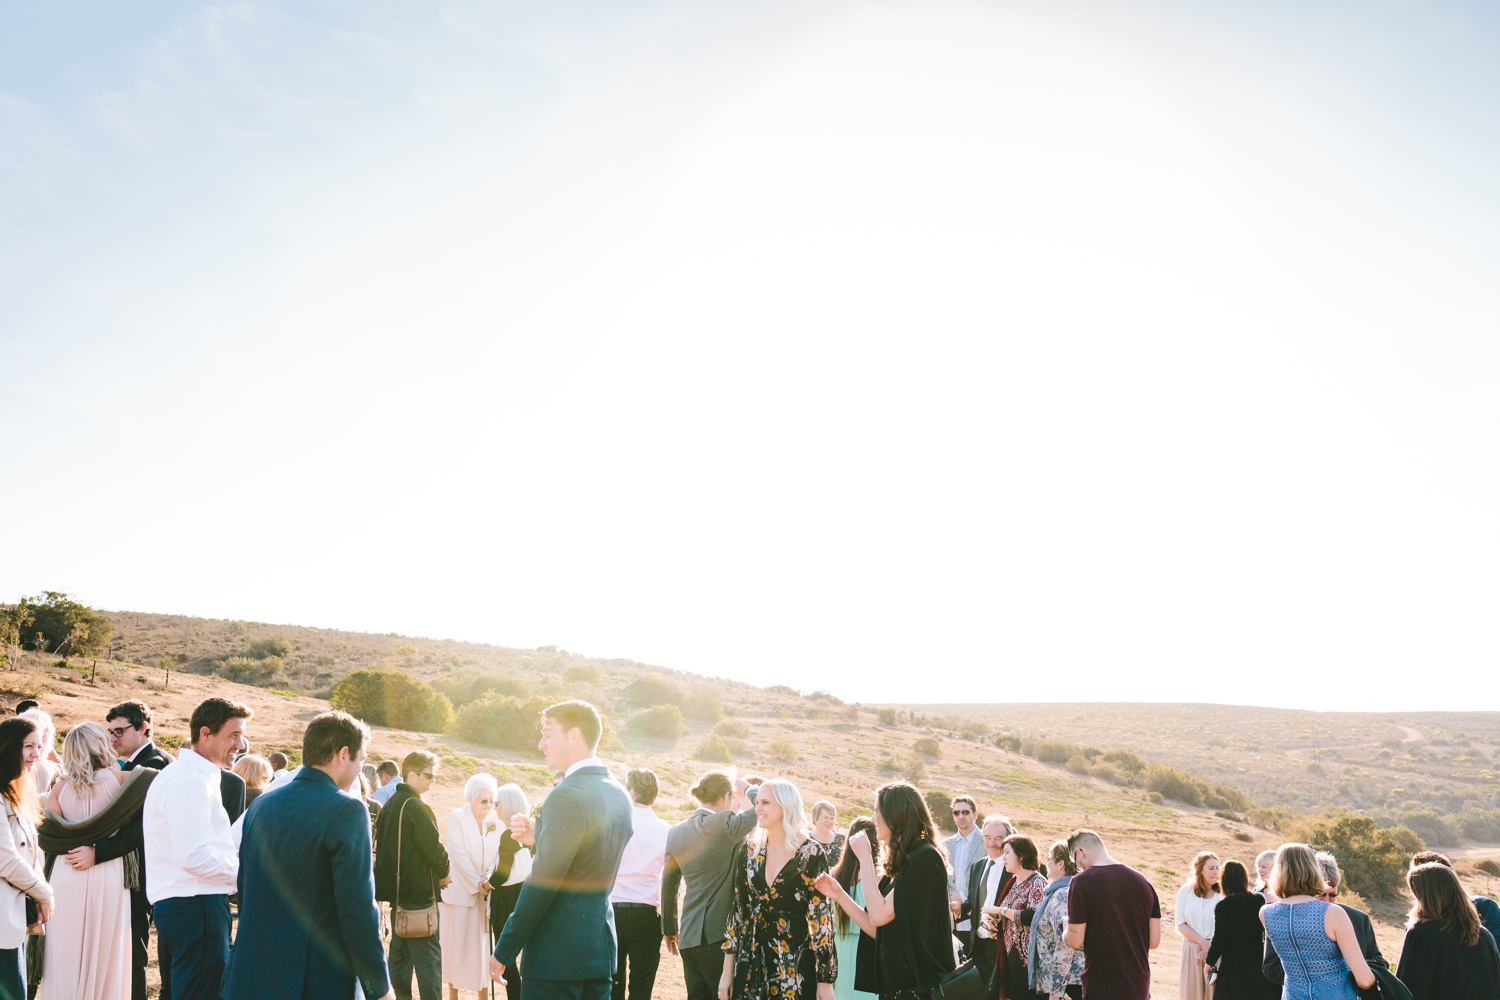 cathryn_warwick_wearecharlieray_hopewell_conservation_eastern_cape_wedding_0087.jpg